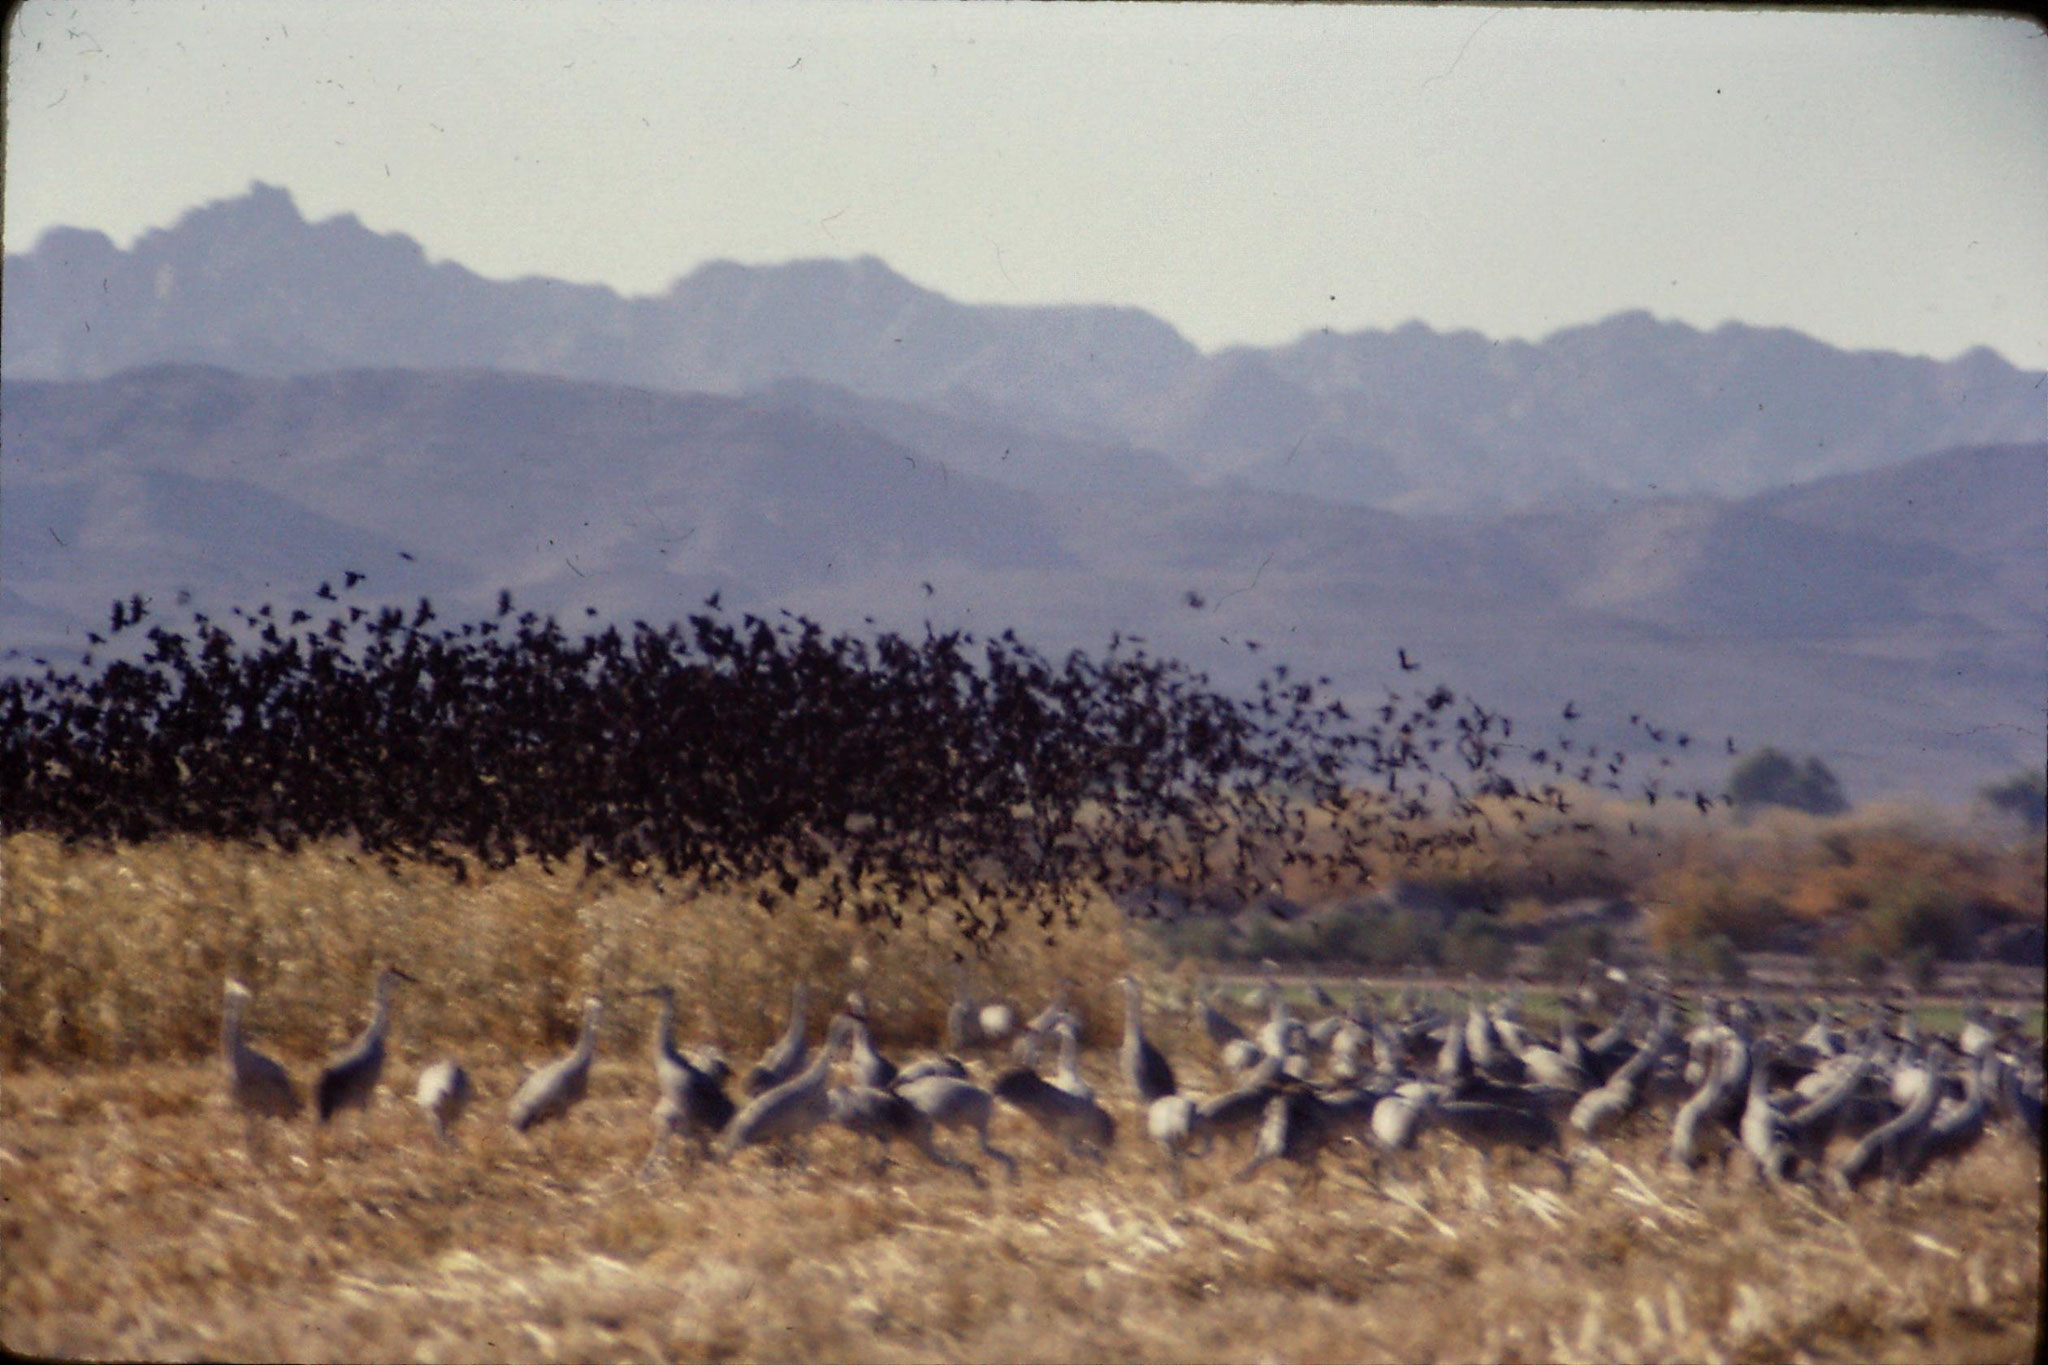 10/12/1990: 3: Cibola WR, sandhill cranes and redwinged blackbirds